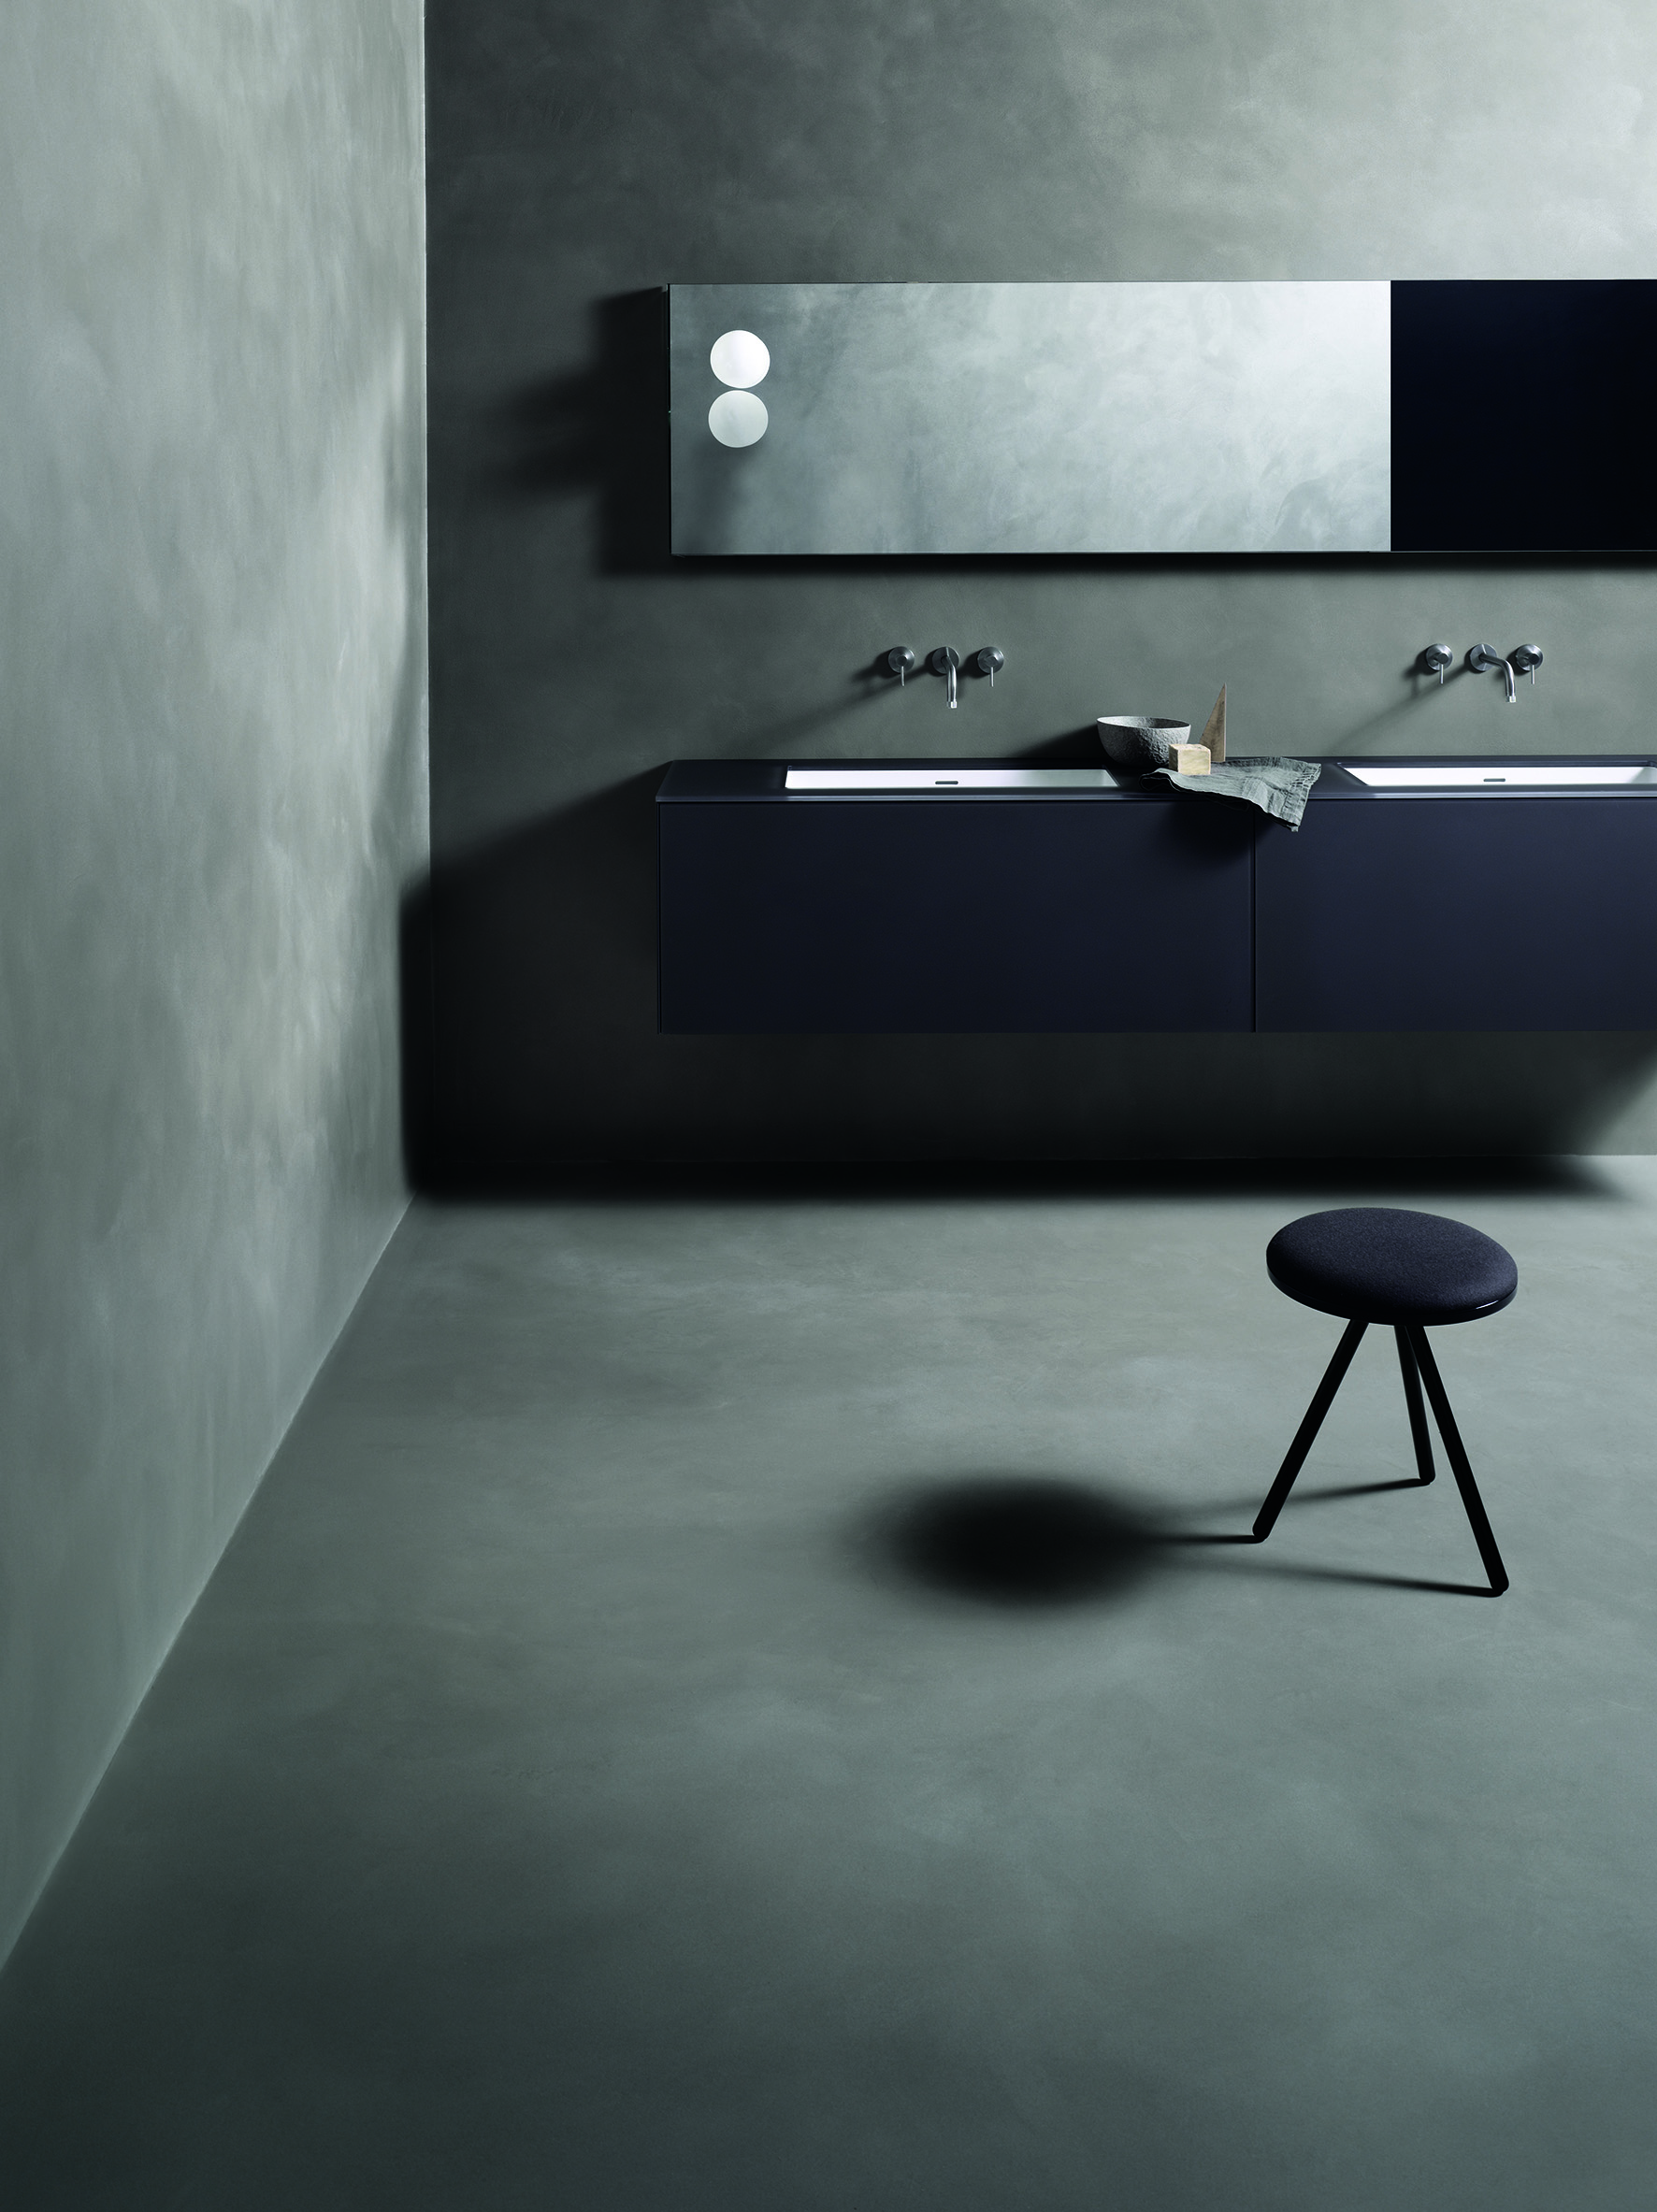 milano design week 2015 apertura kerakoll design house